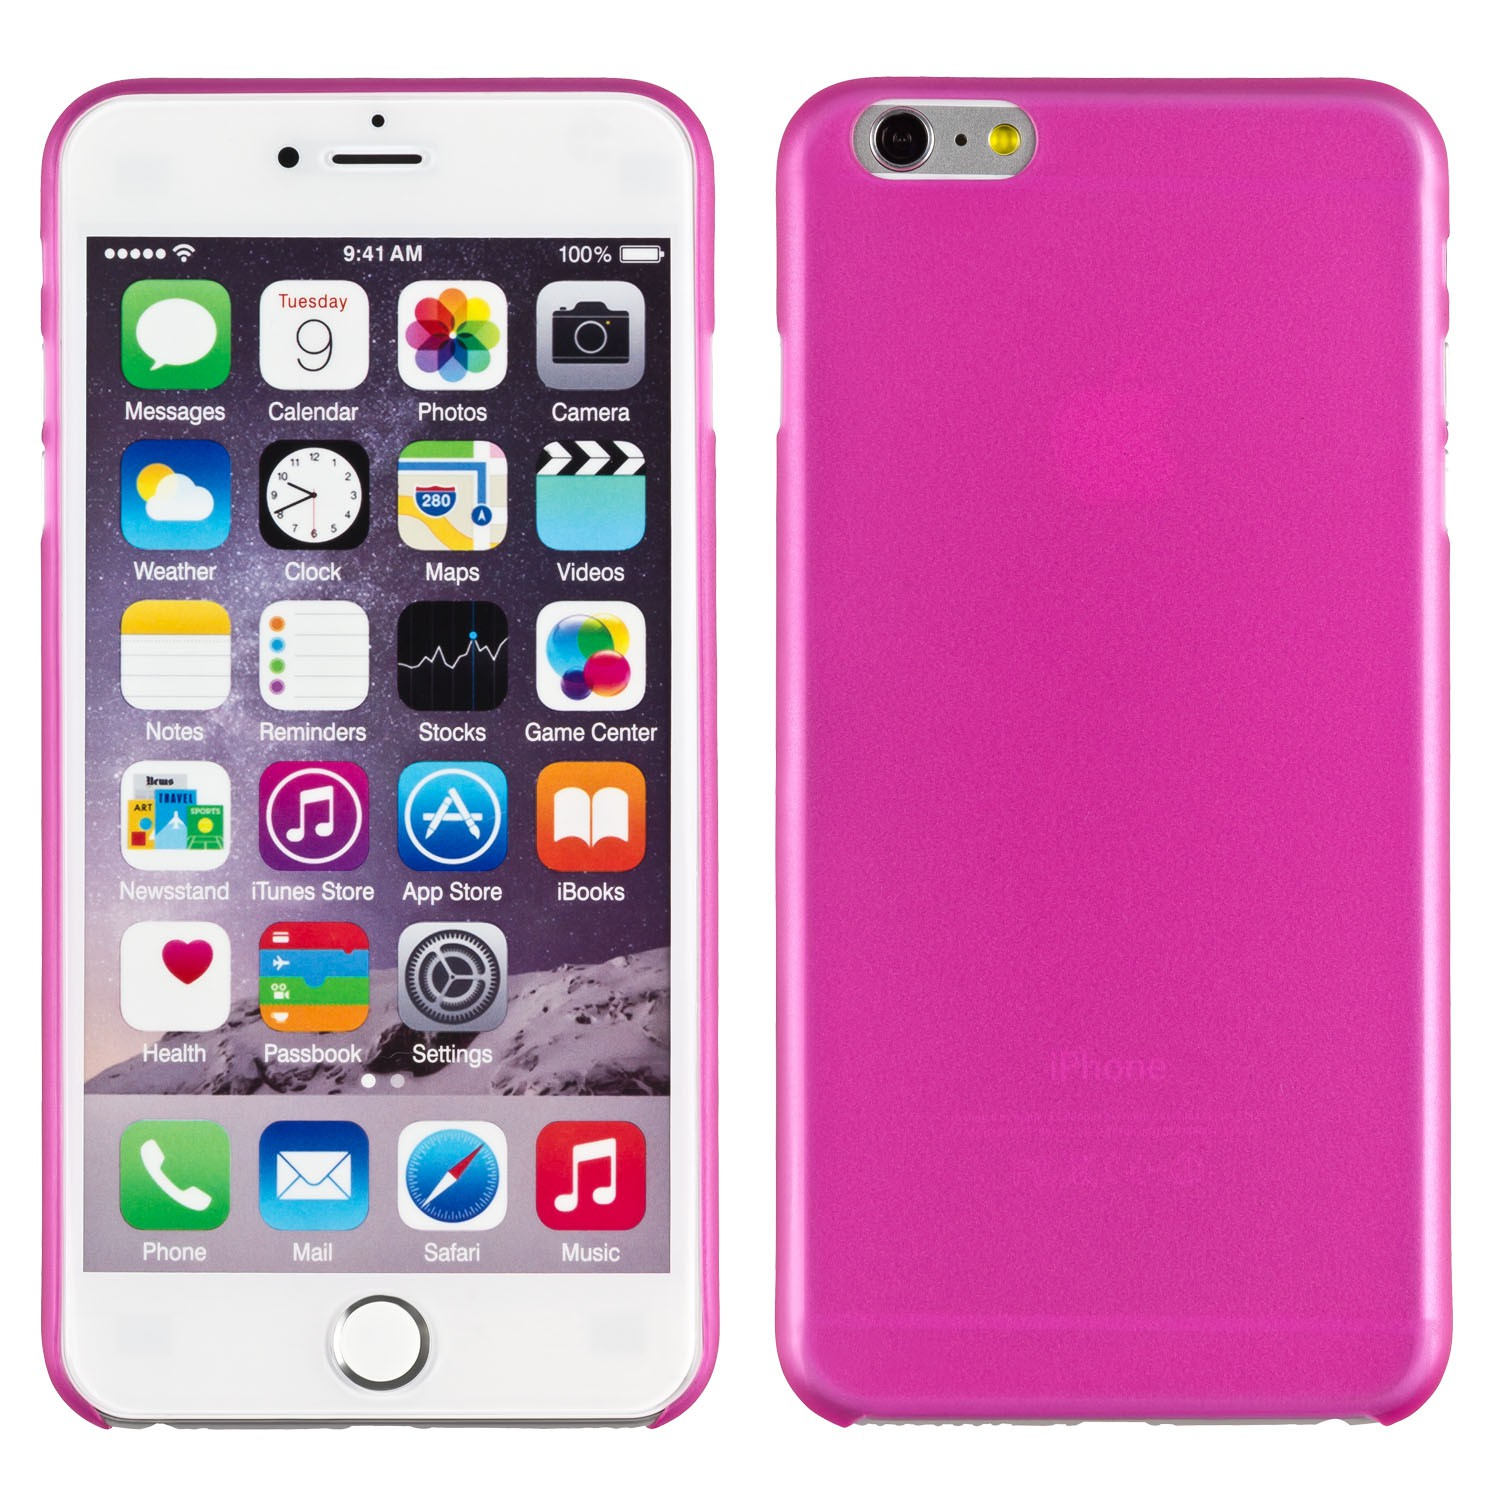 Yemota Pro Slimcase iPhone 6 plus - Pink